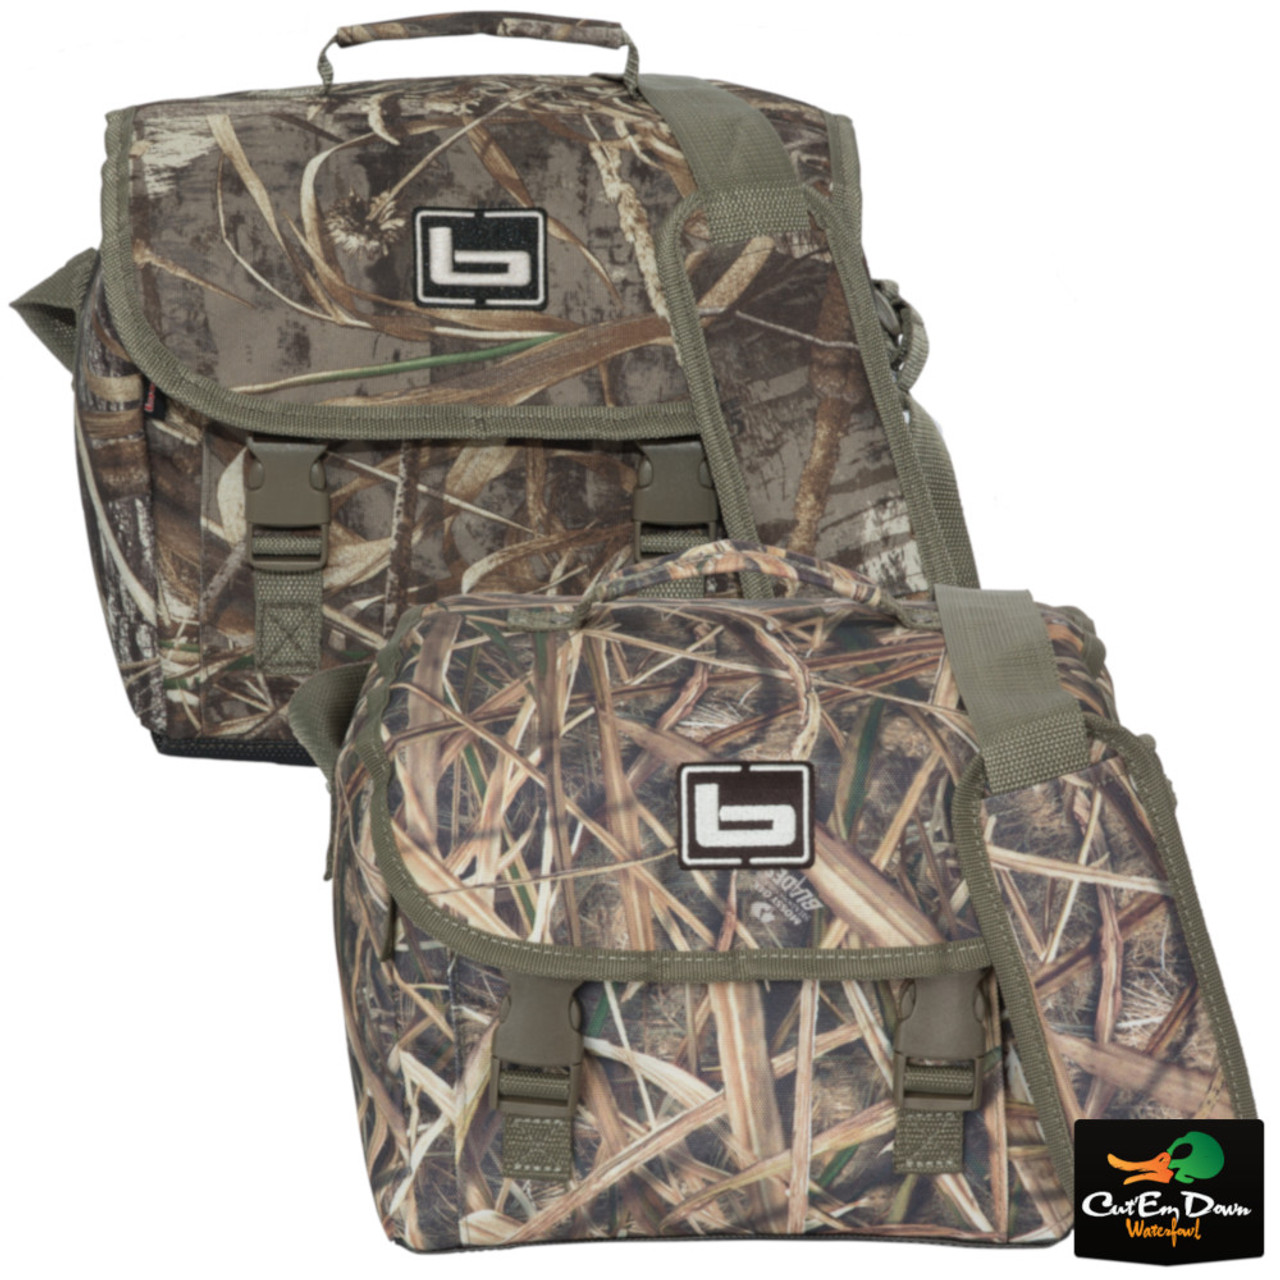 DUCK HUNTING CAMO STORAGE BLIND BAG NEW BANDED GEAR AIR HARD SHELL BACK PACK